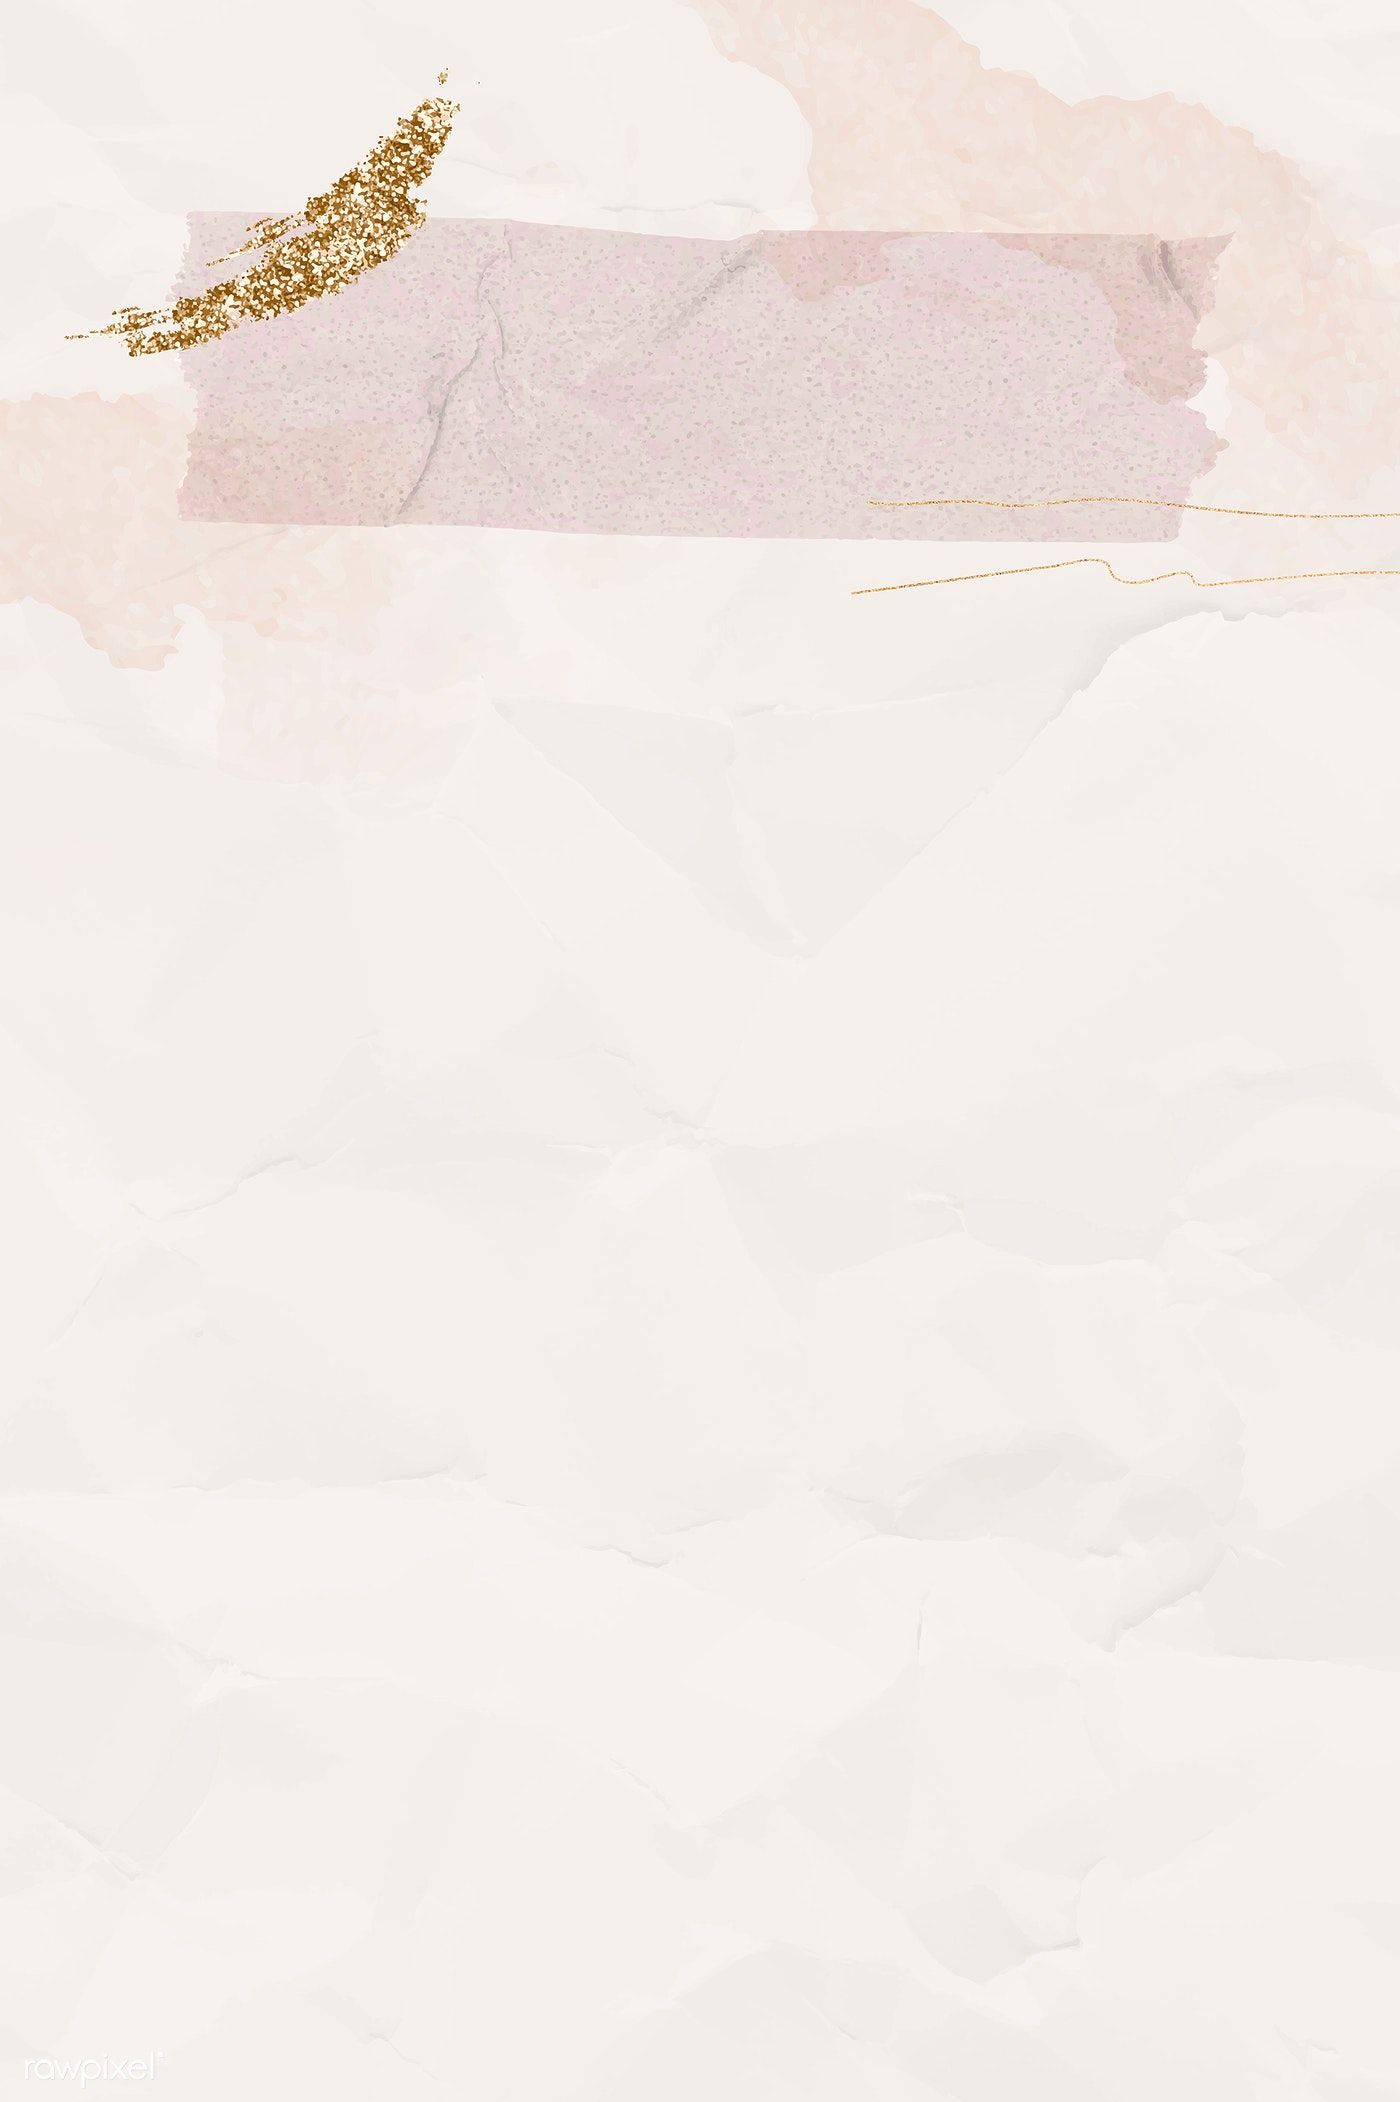 Download premium vector of Blank crumpled pink paper with washi tape template vector by Ning about Background note, crumpled paper textured, feminine background, water paint invitation, and watercolor paper note design 1205035